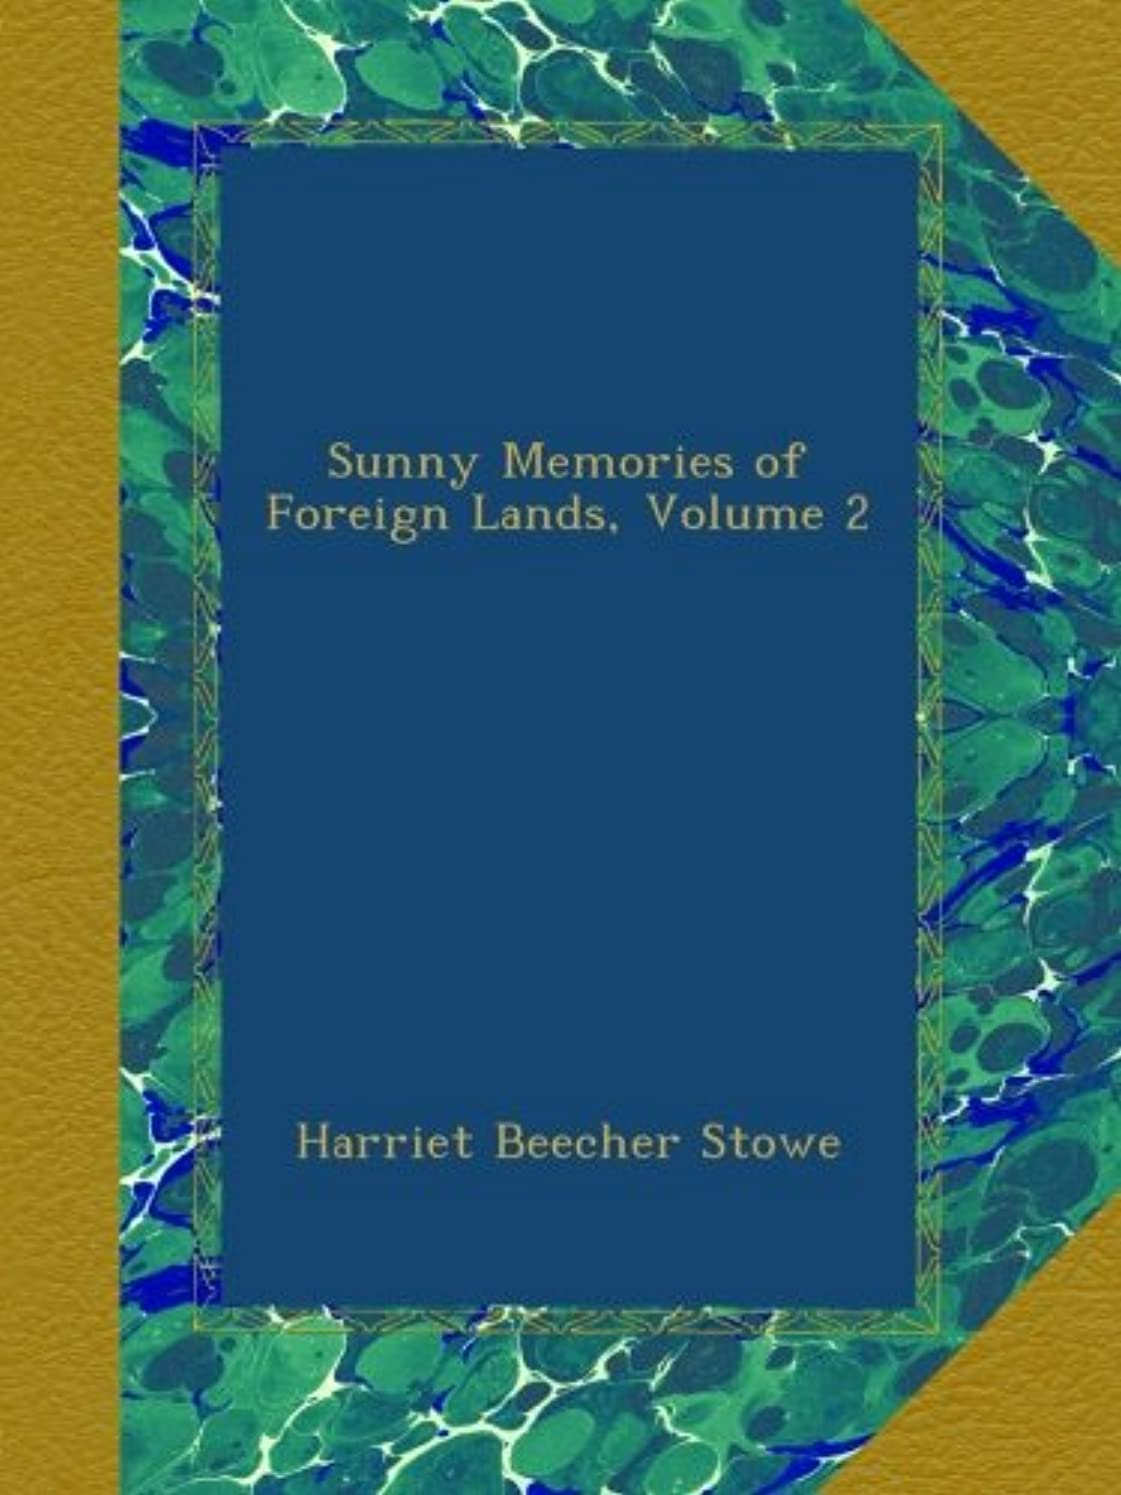 シーサイド喉頭フレアSunny Memories of Foreign Lands, Volume 2